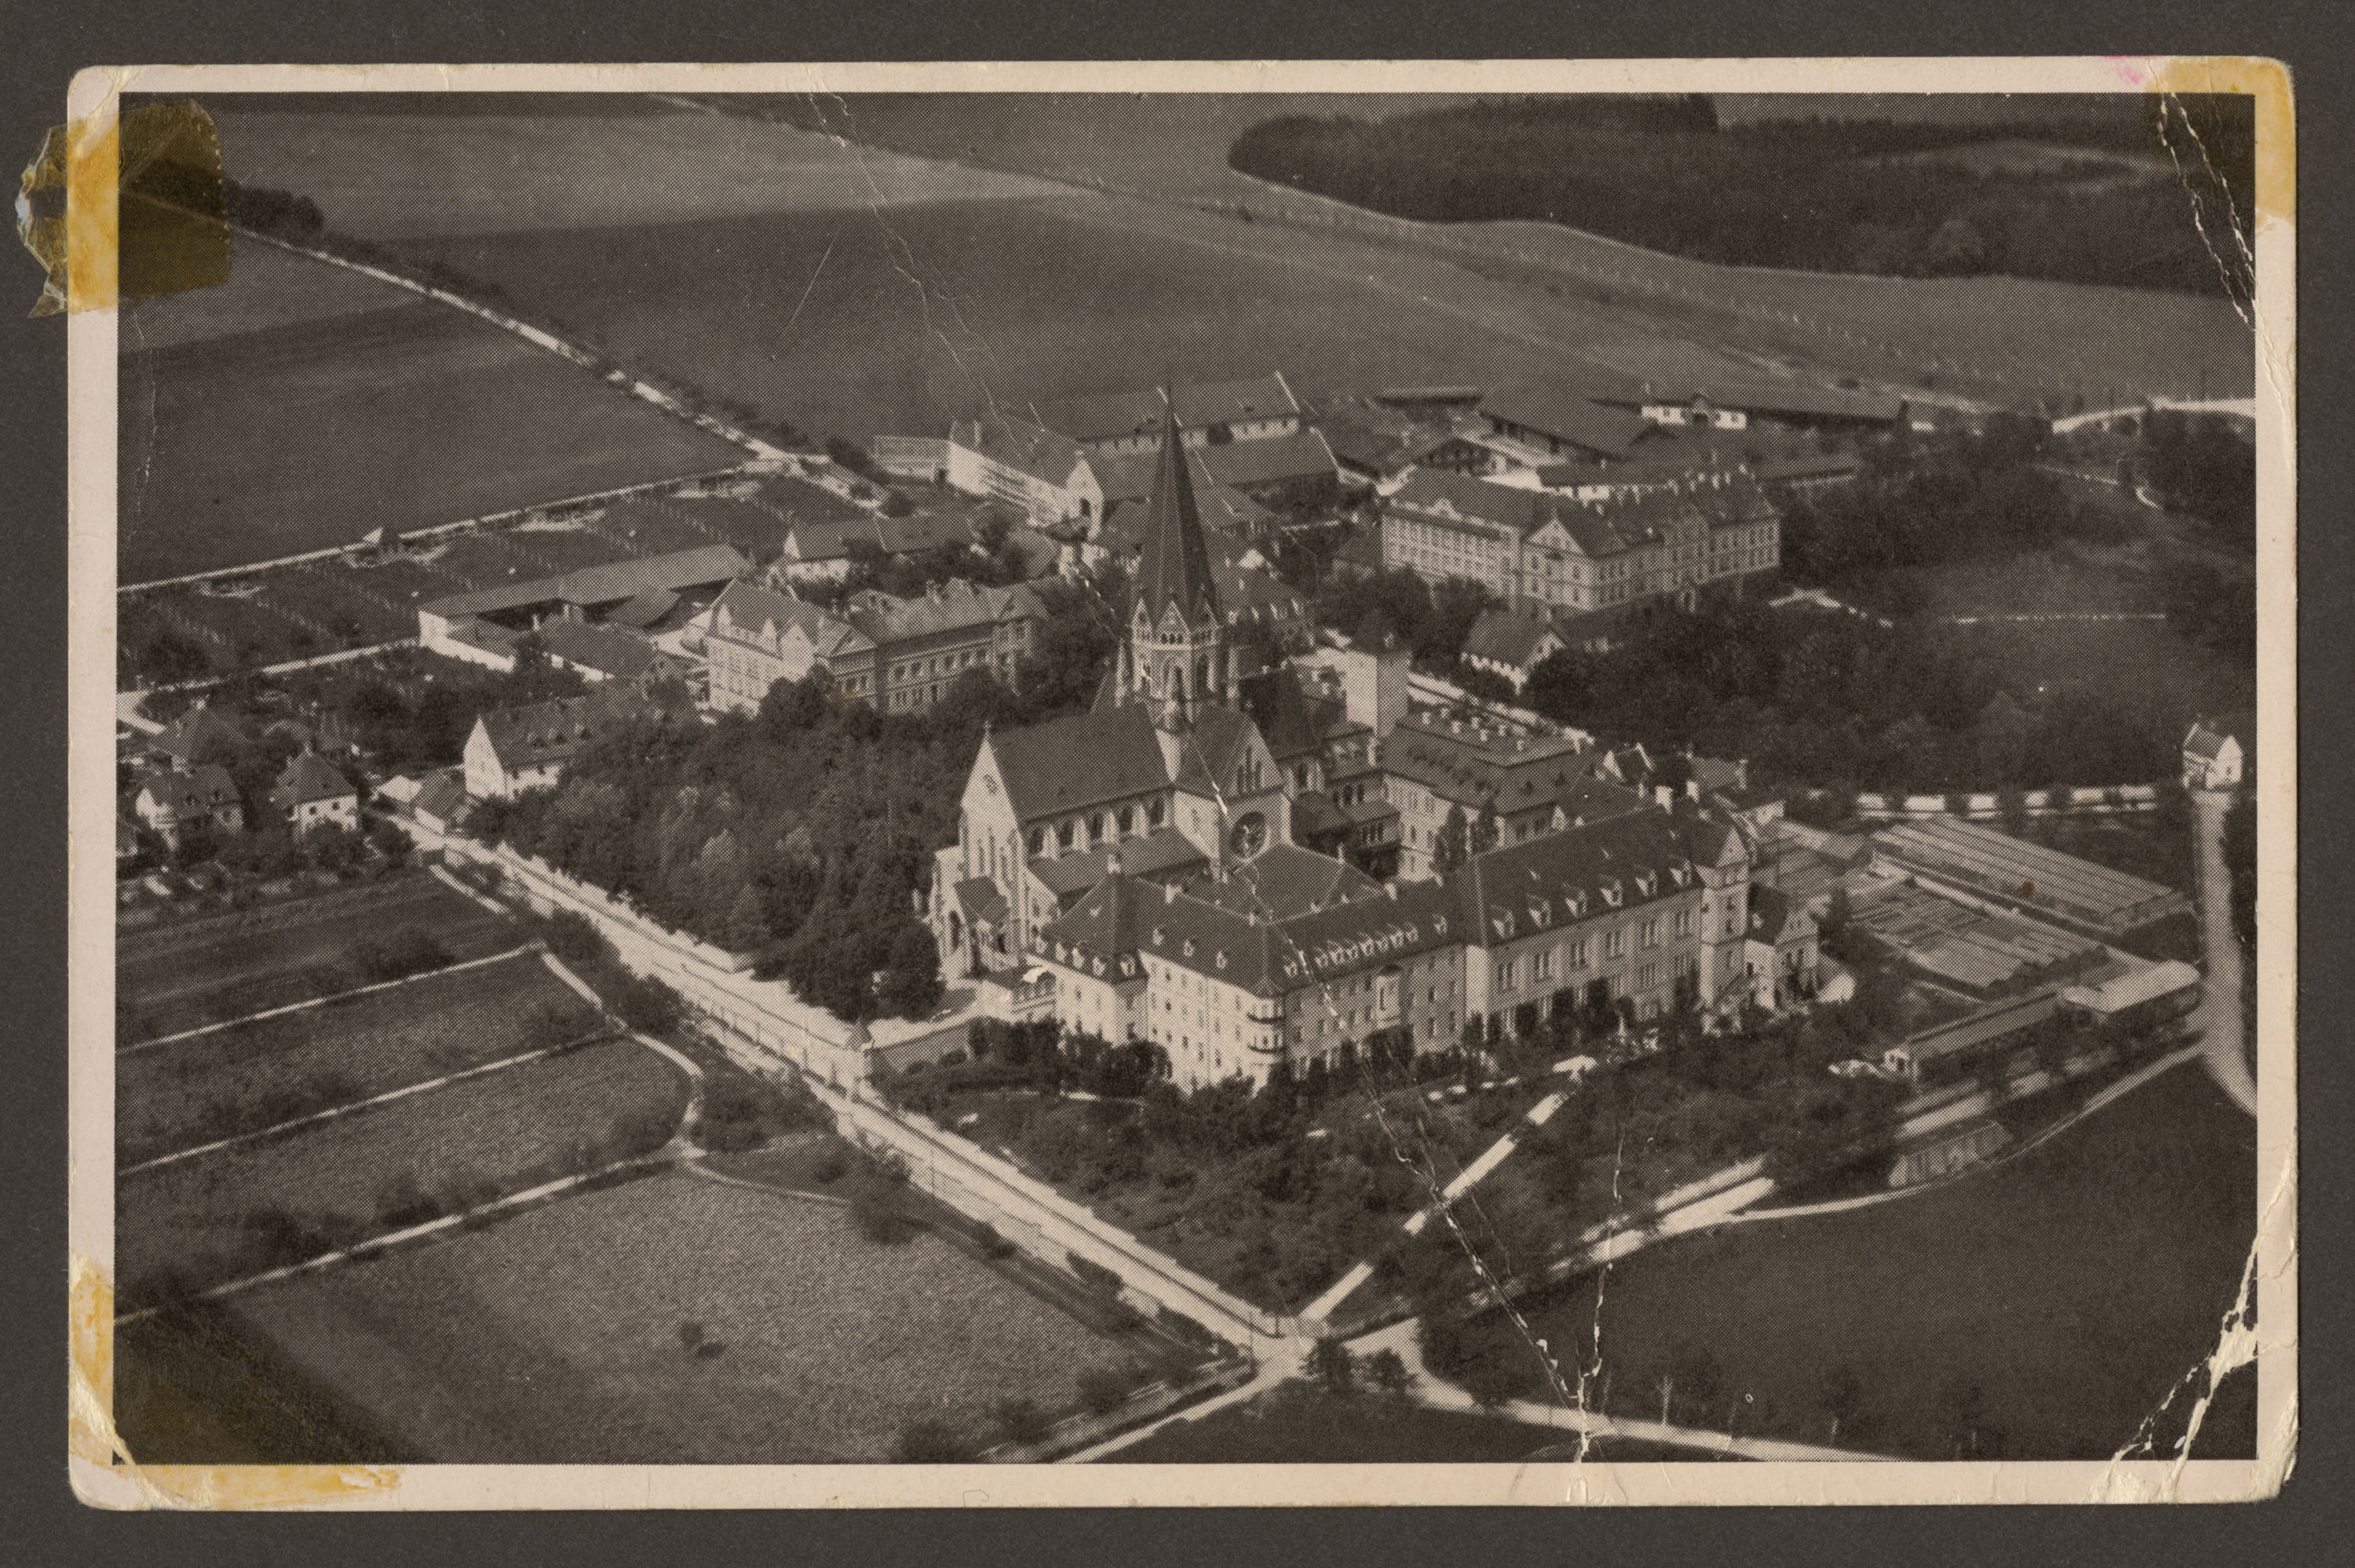 View of the cloister of Sankt (Saint) Ottilien which was lconverted to a German military hospital during the war and after the war as a displaced persons camp and hospital.